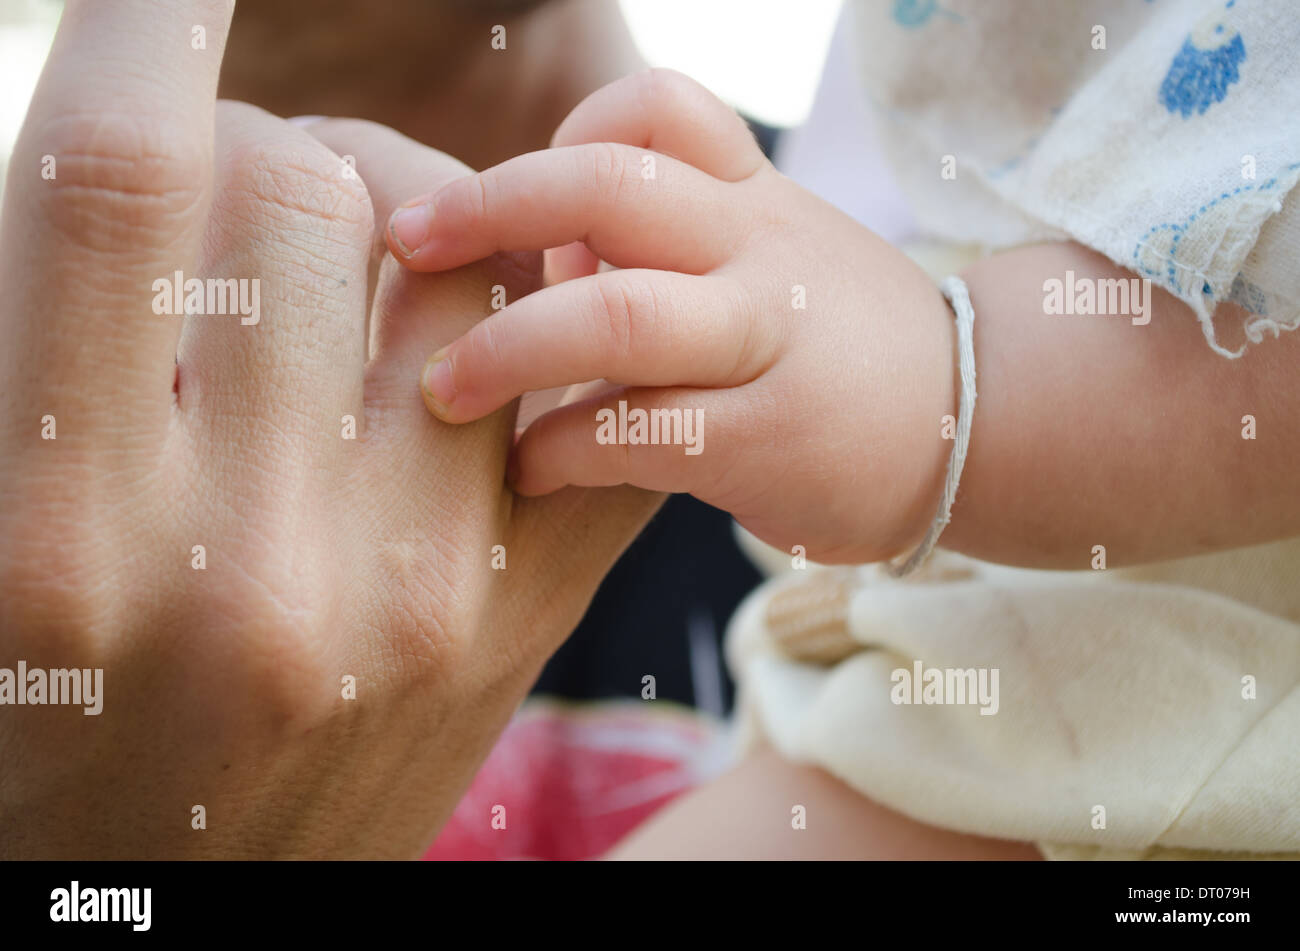 baby finger with relation - Stock Image